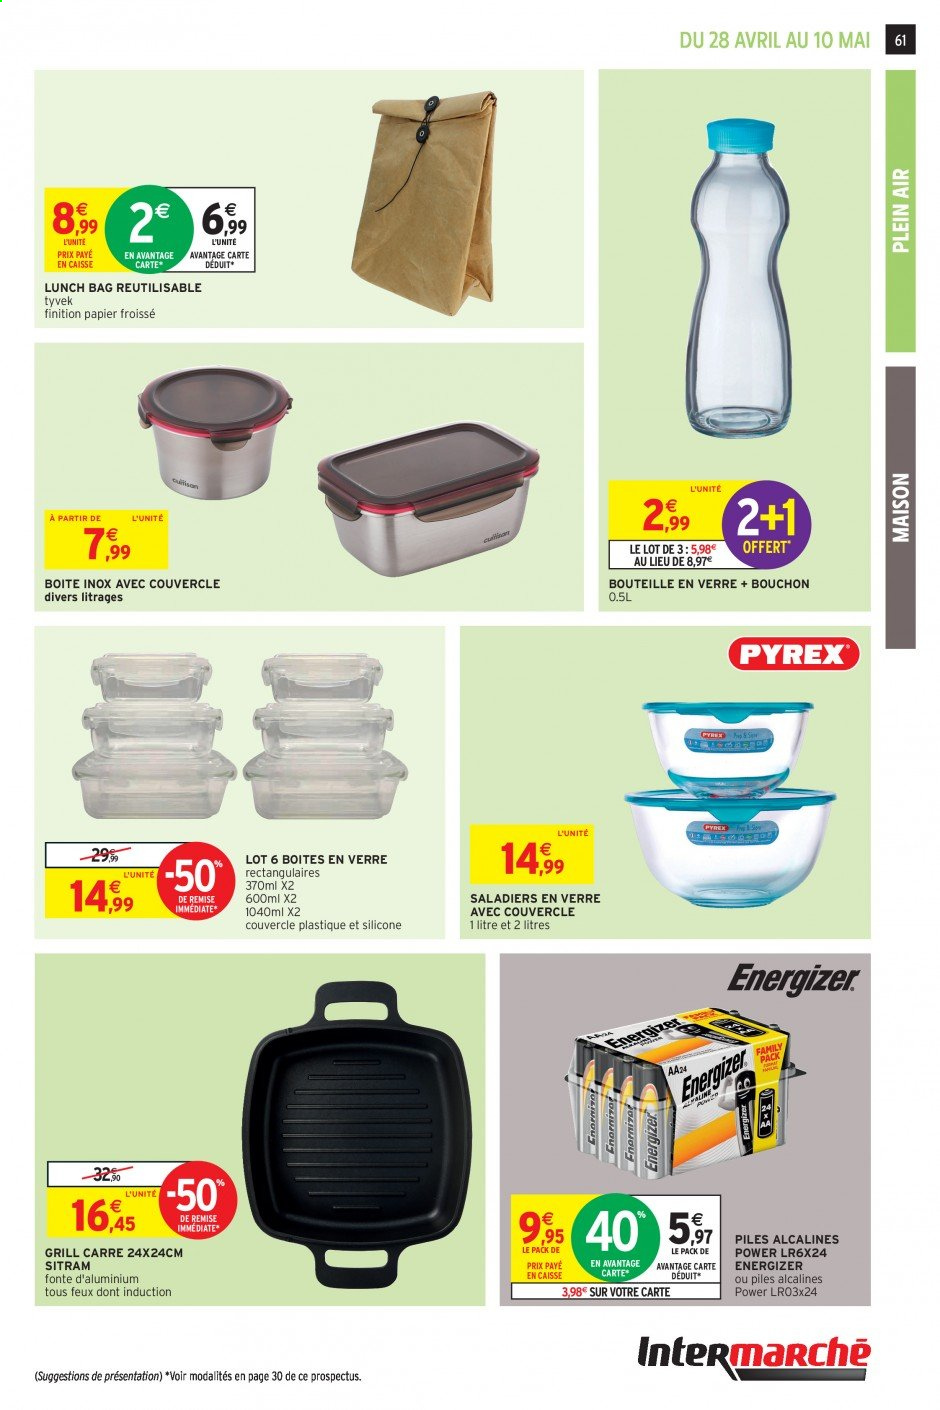 Catalogue Intermarché - 28.04.2020 - 10.05.2020. Page 58.